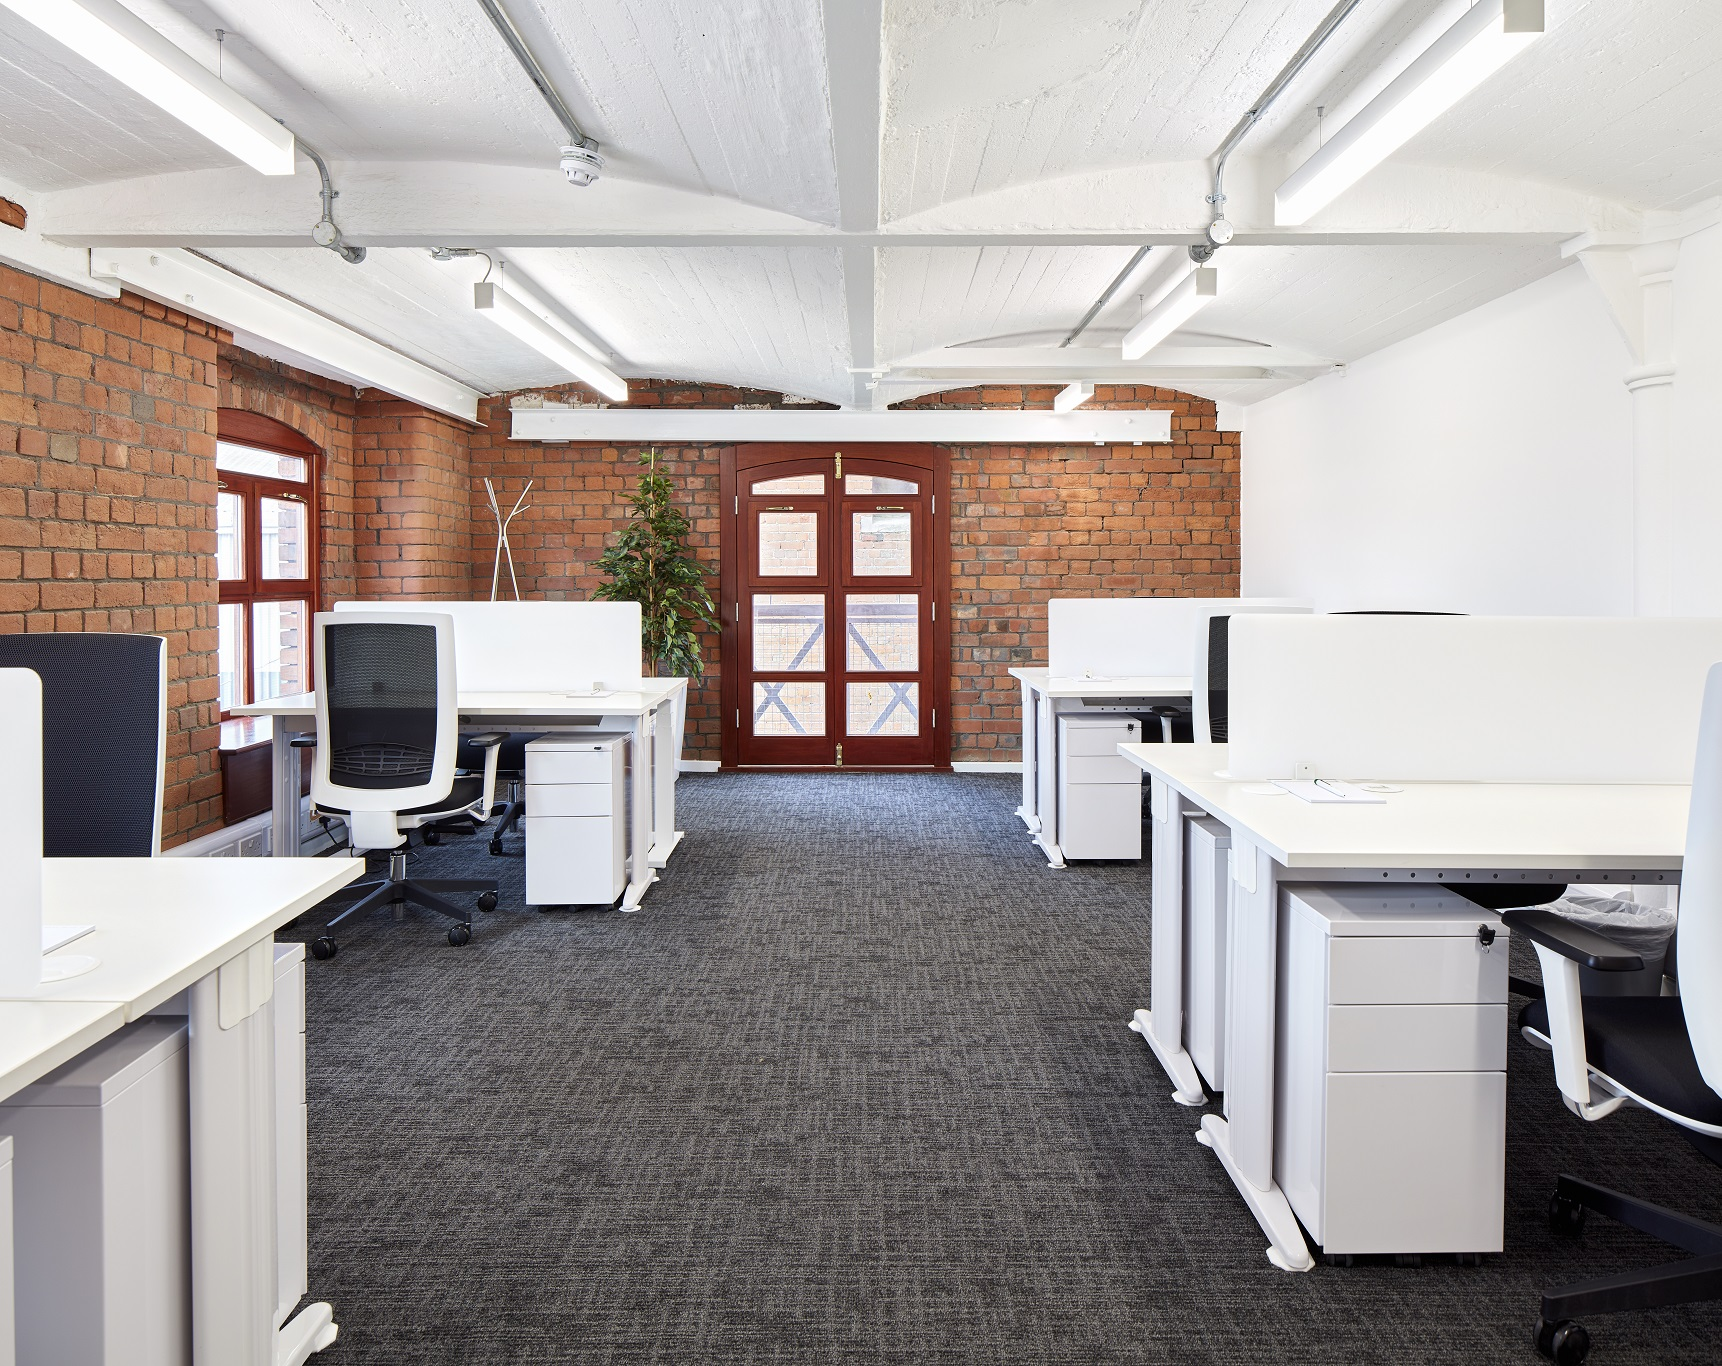 Space2B at The Maltings - East Tyndall Street, CF24 - Cardiff